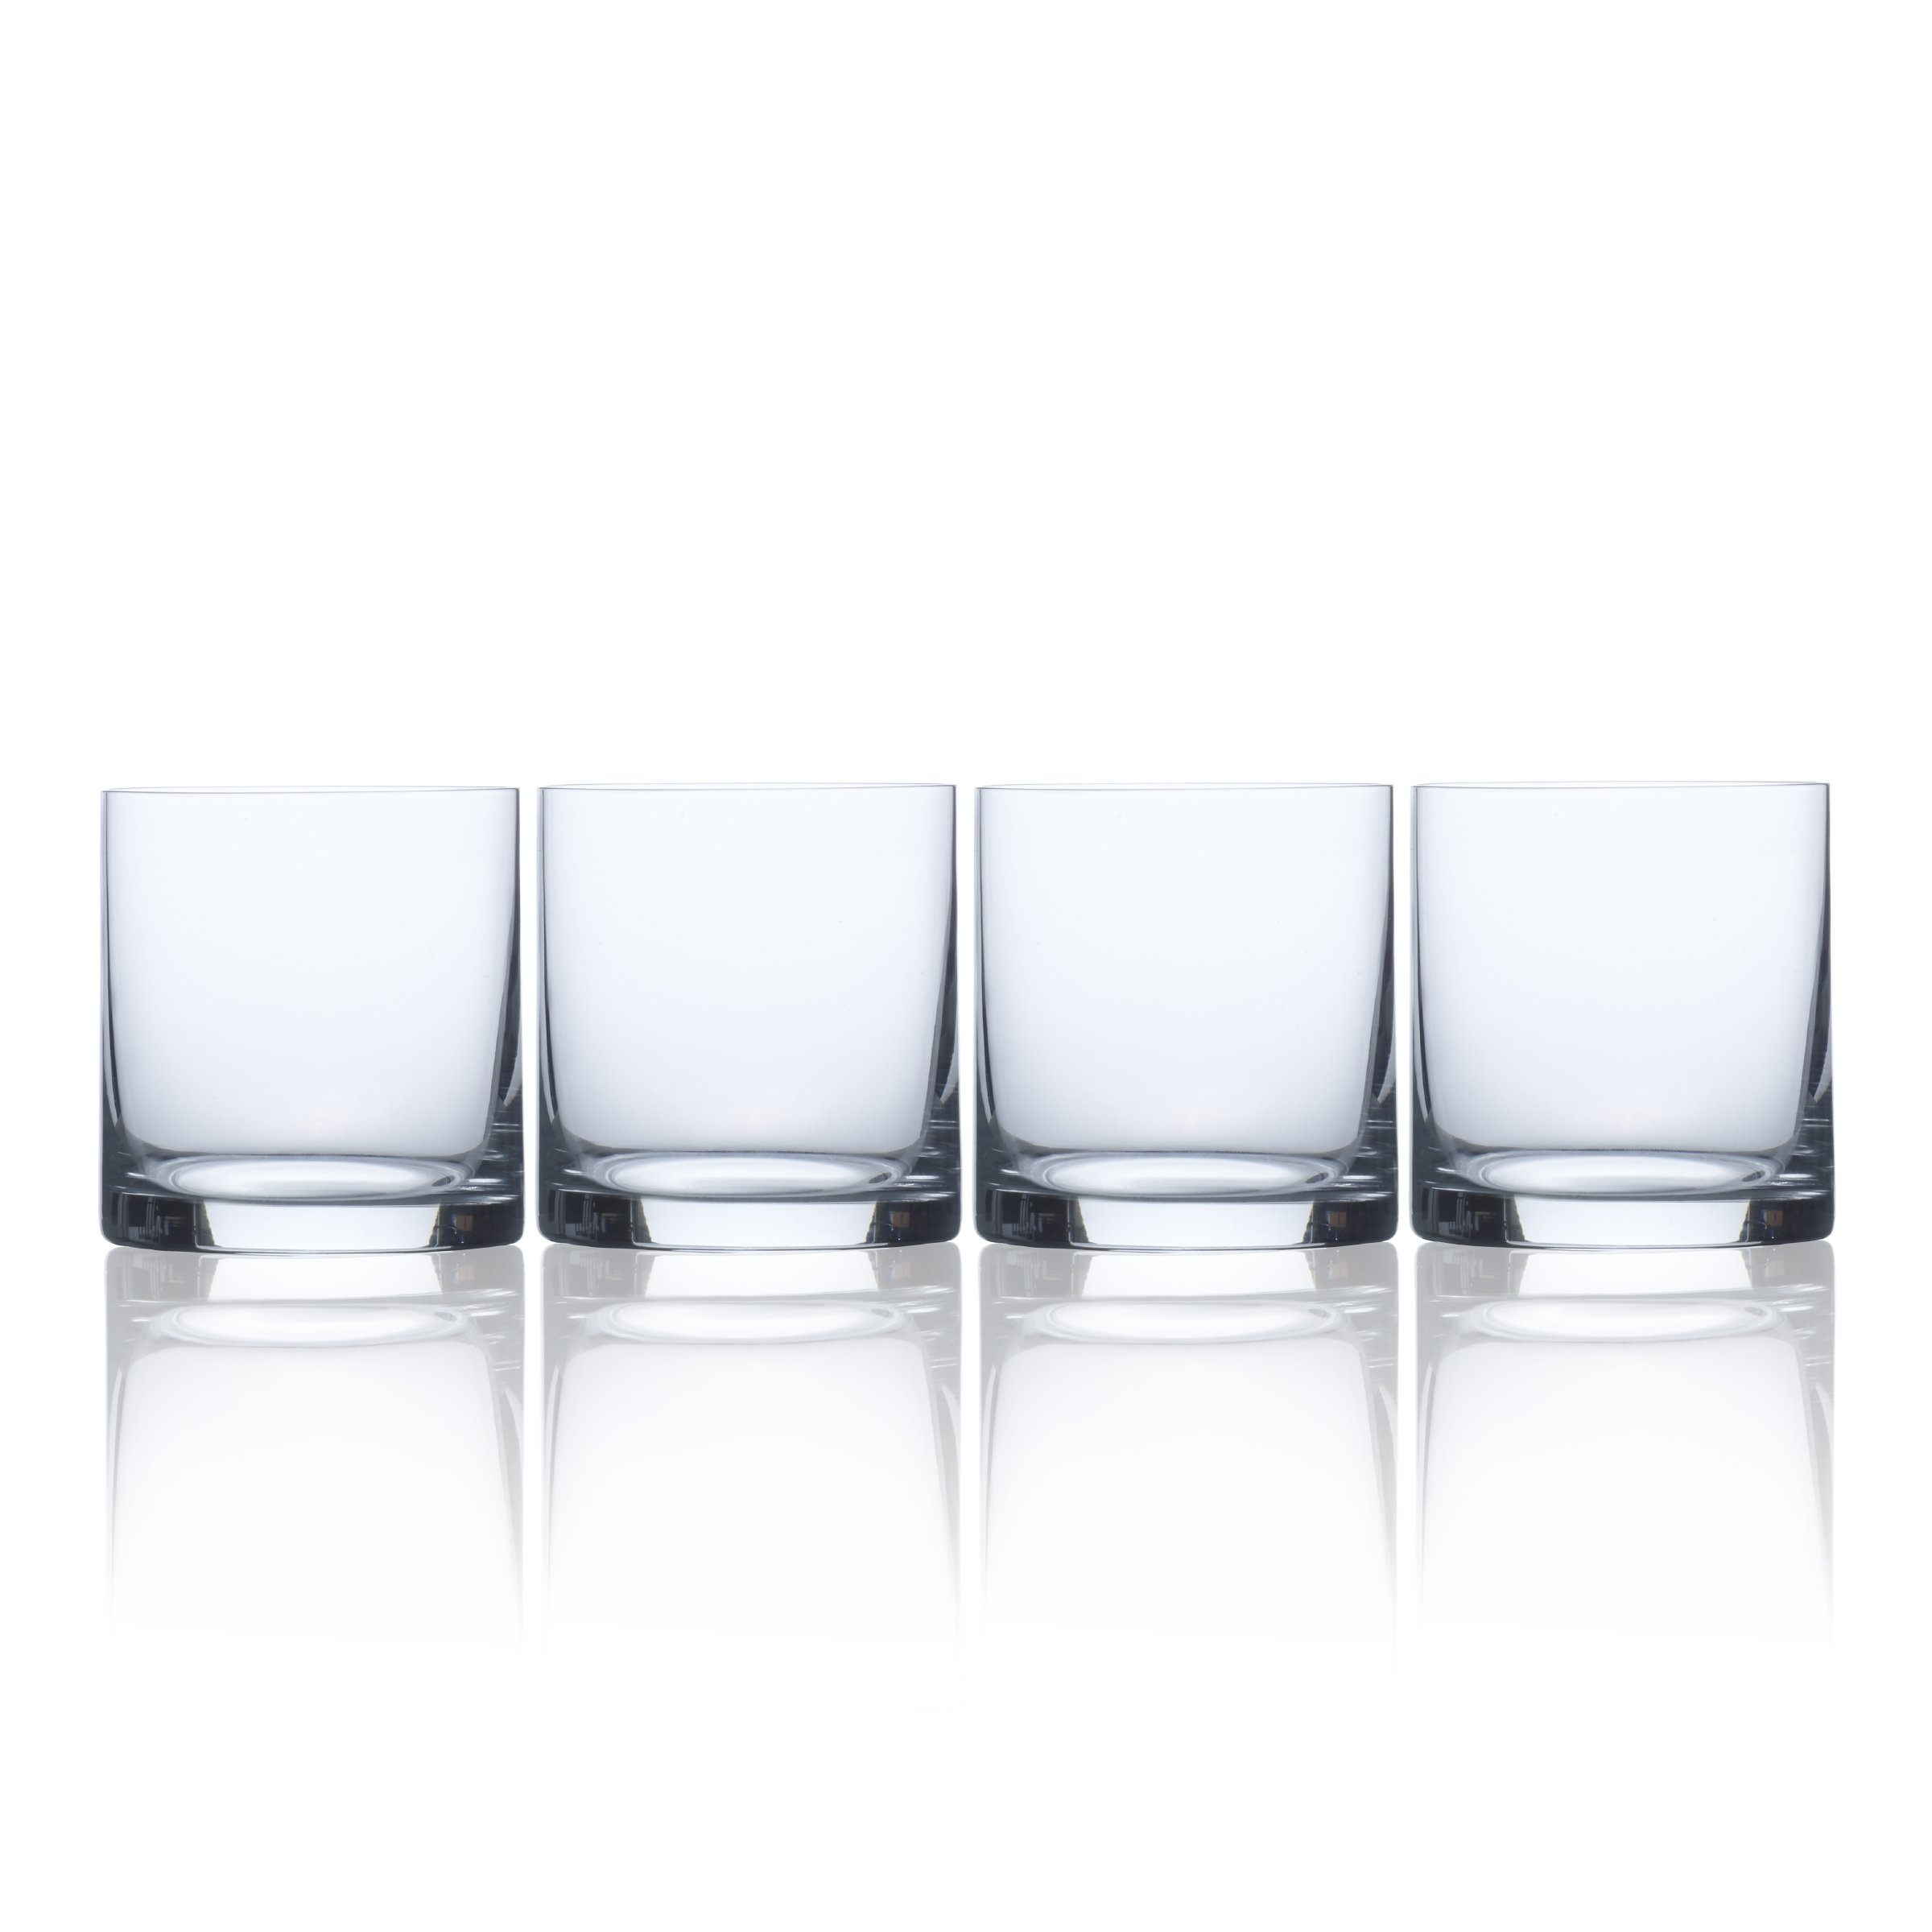 Mikasa Laura Double Old Fashioned, 13.5-Ounce, Set of 4 by Mikasa (Image #1)